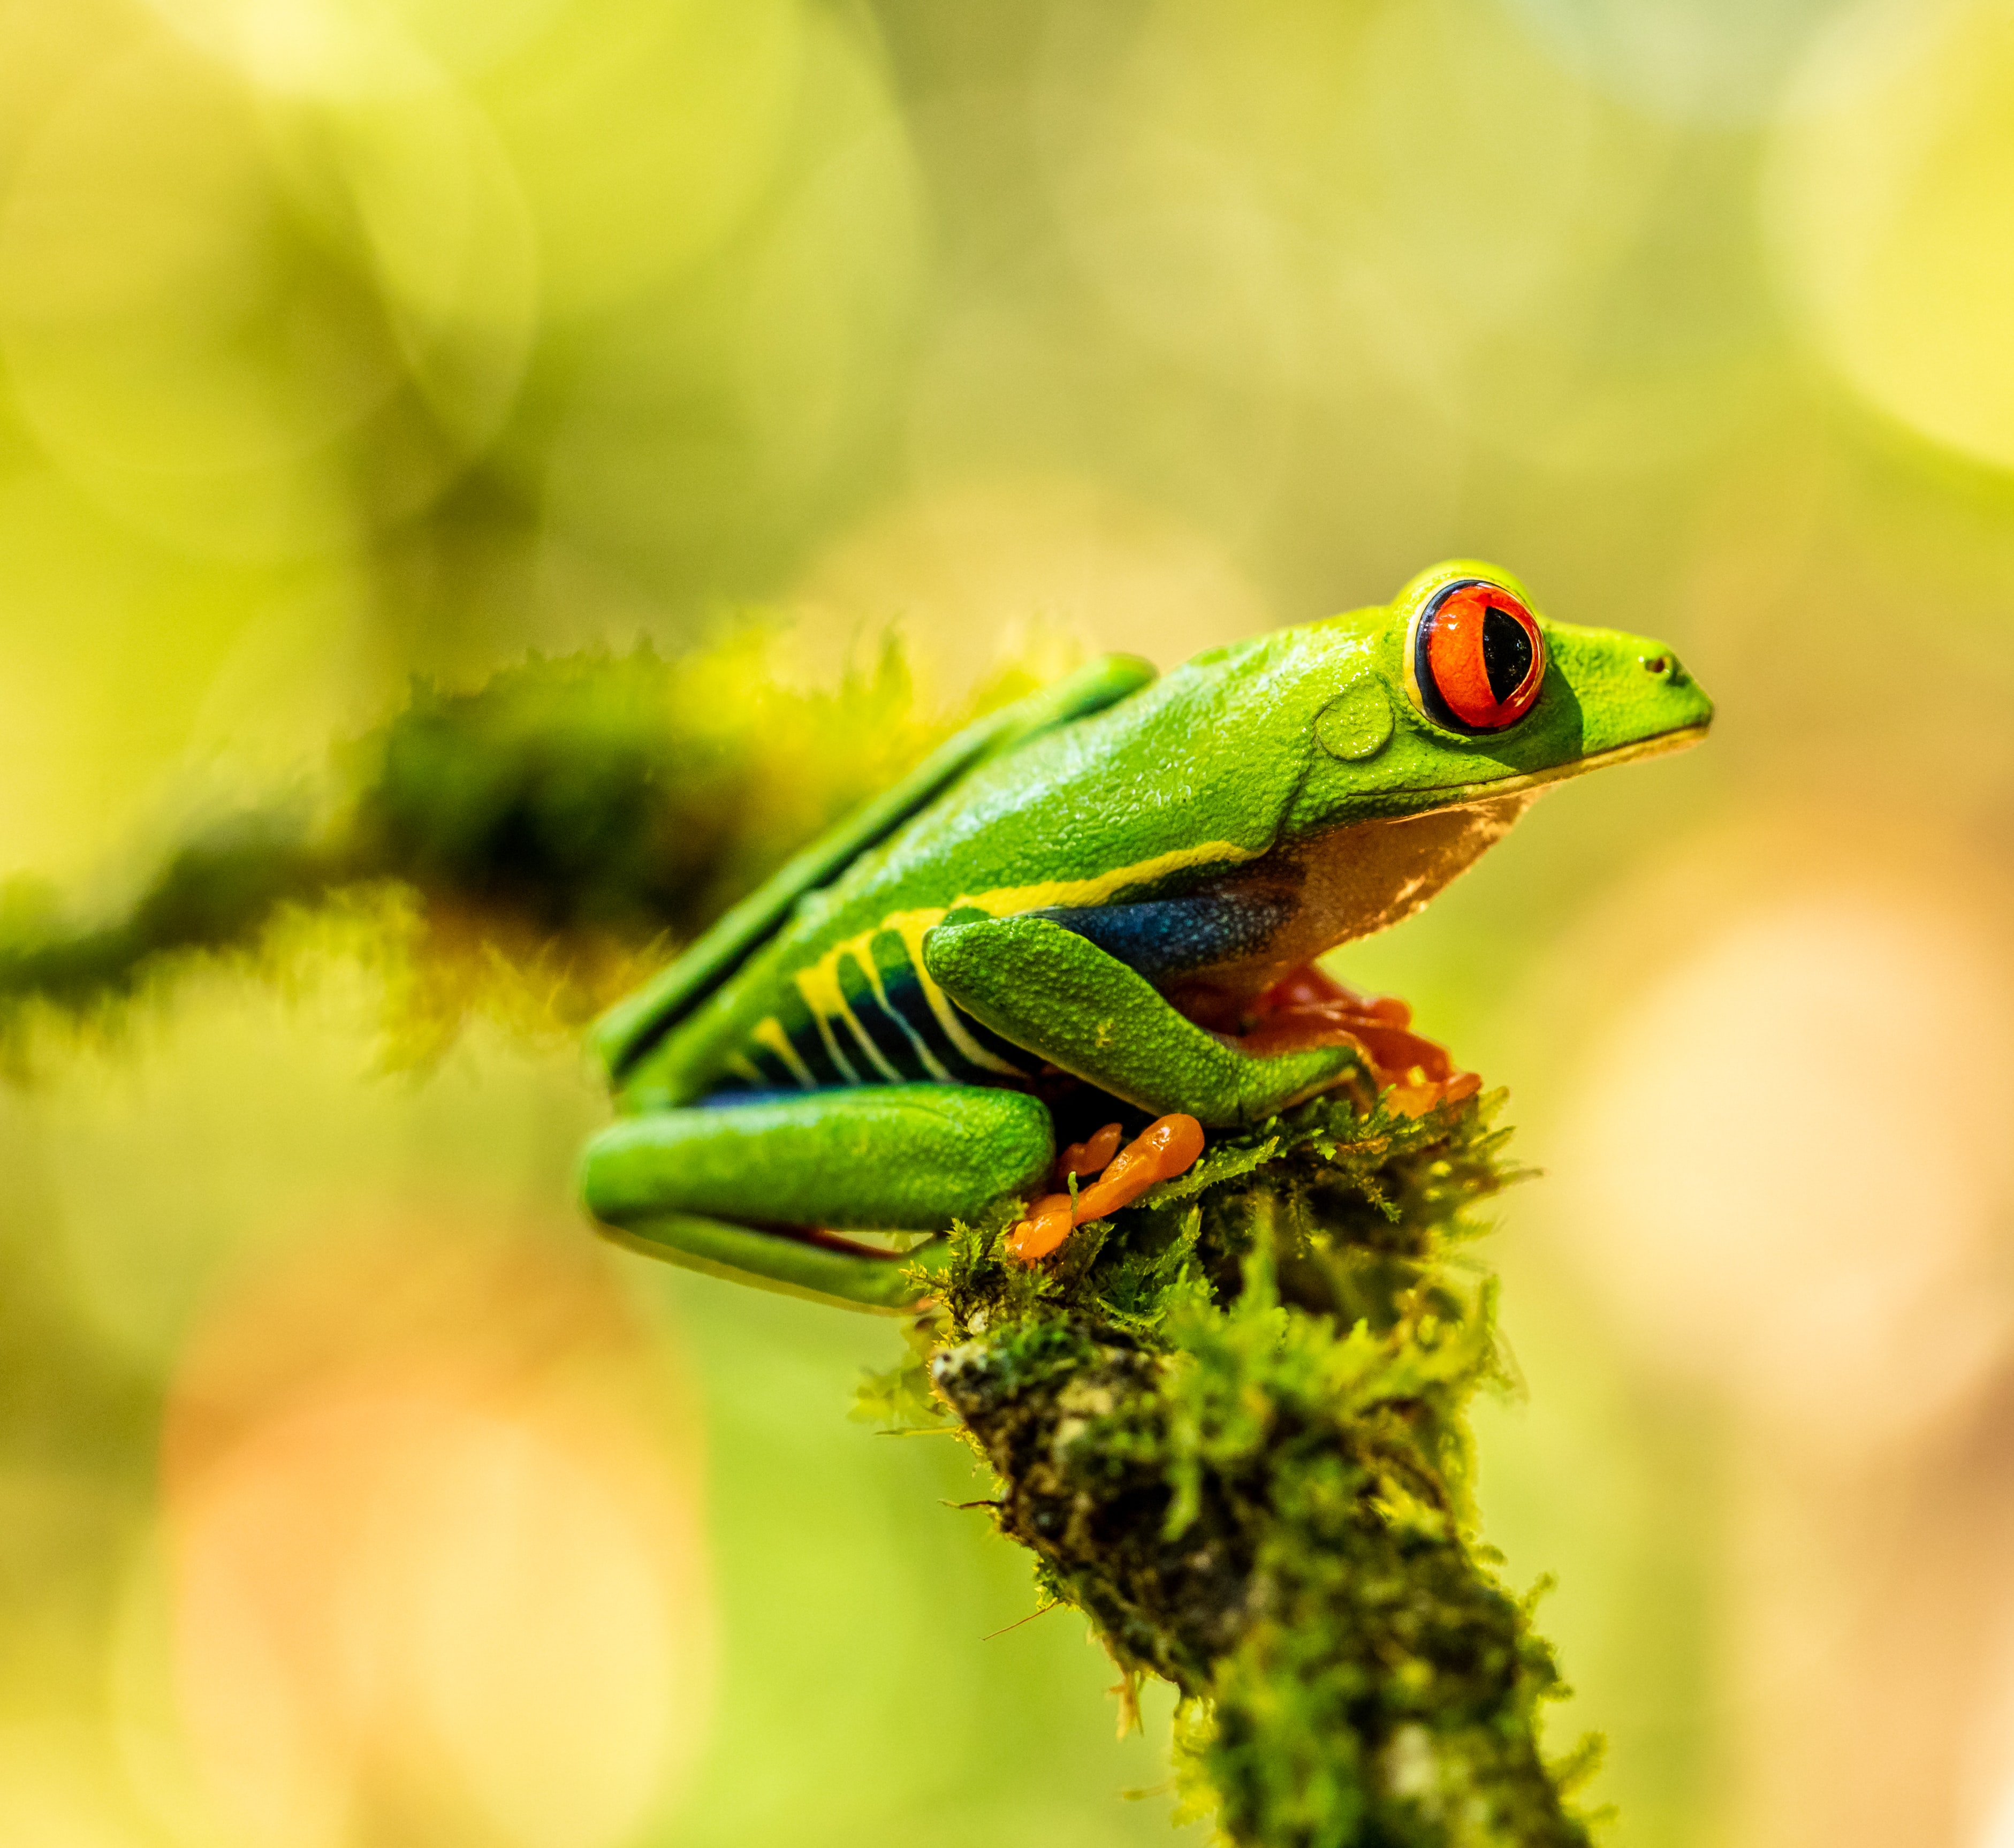 86234 download wallpaper Animals, Frog, Amphibian, Animal screensavers and pictures for free